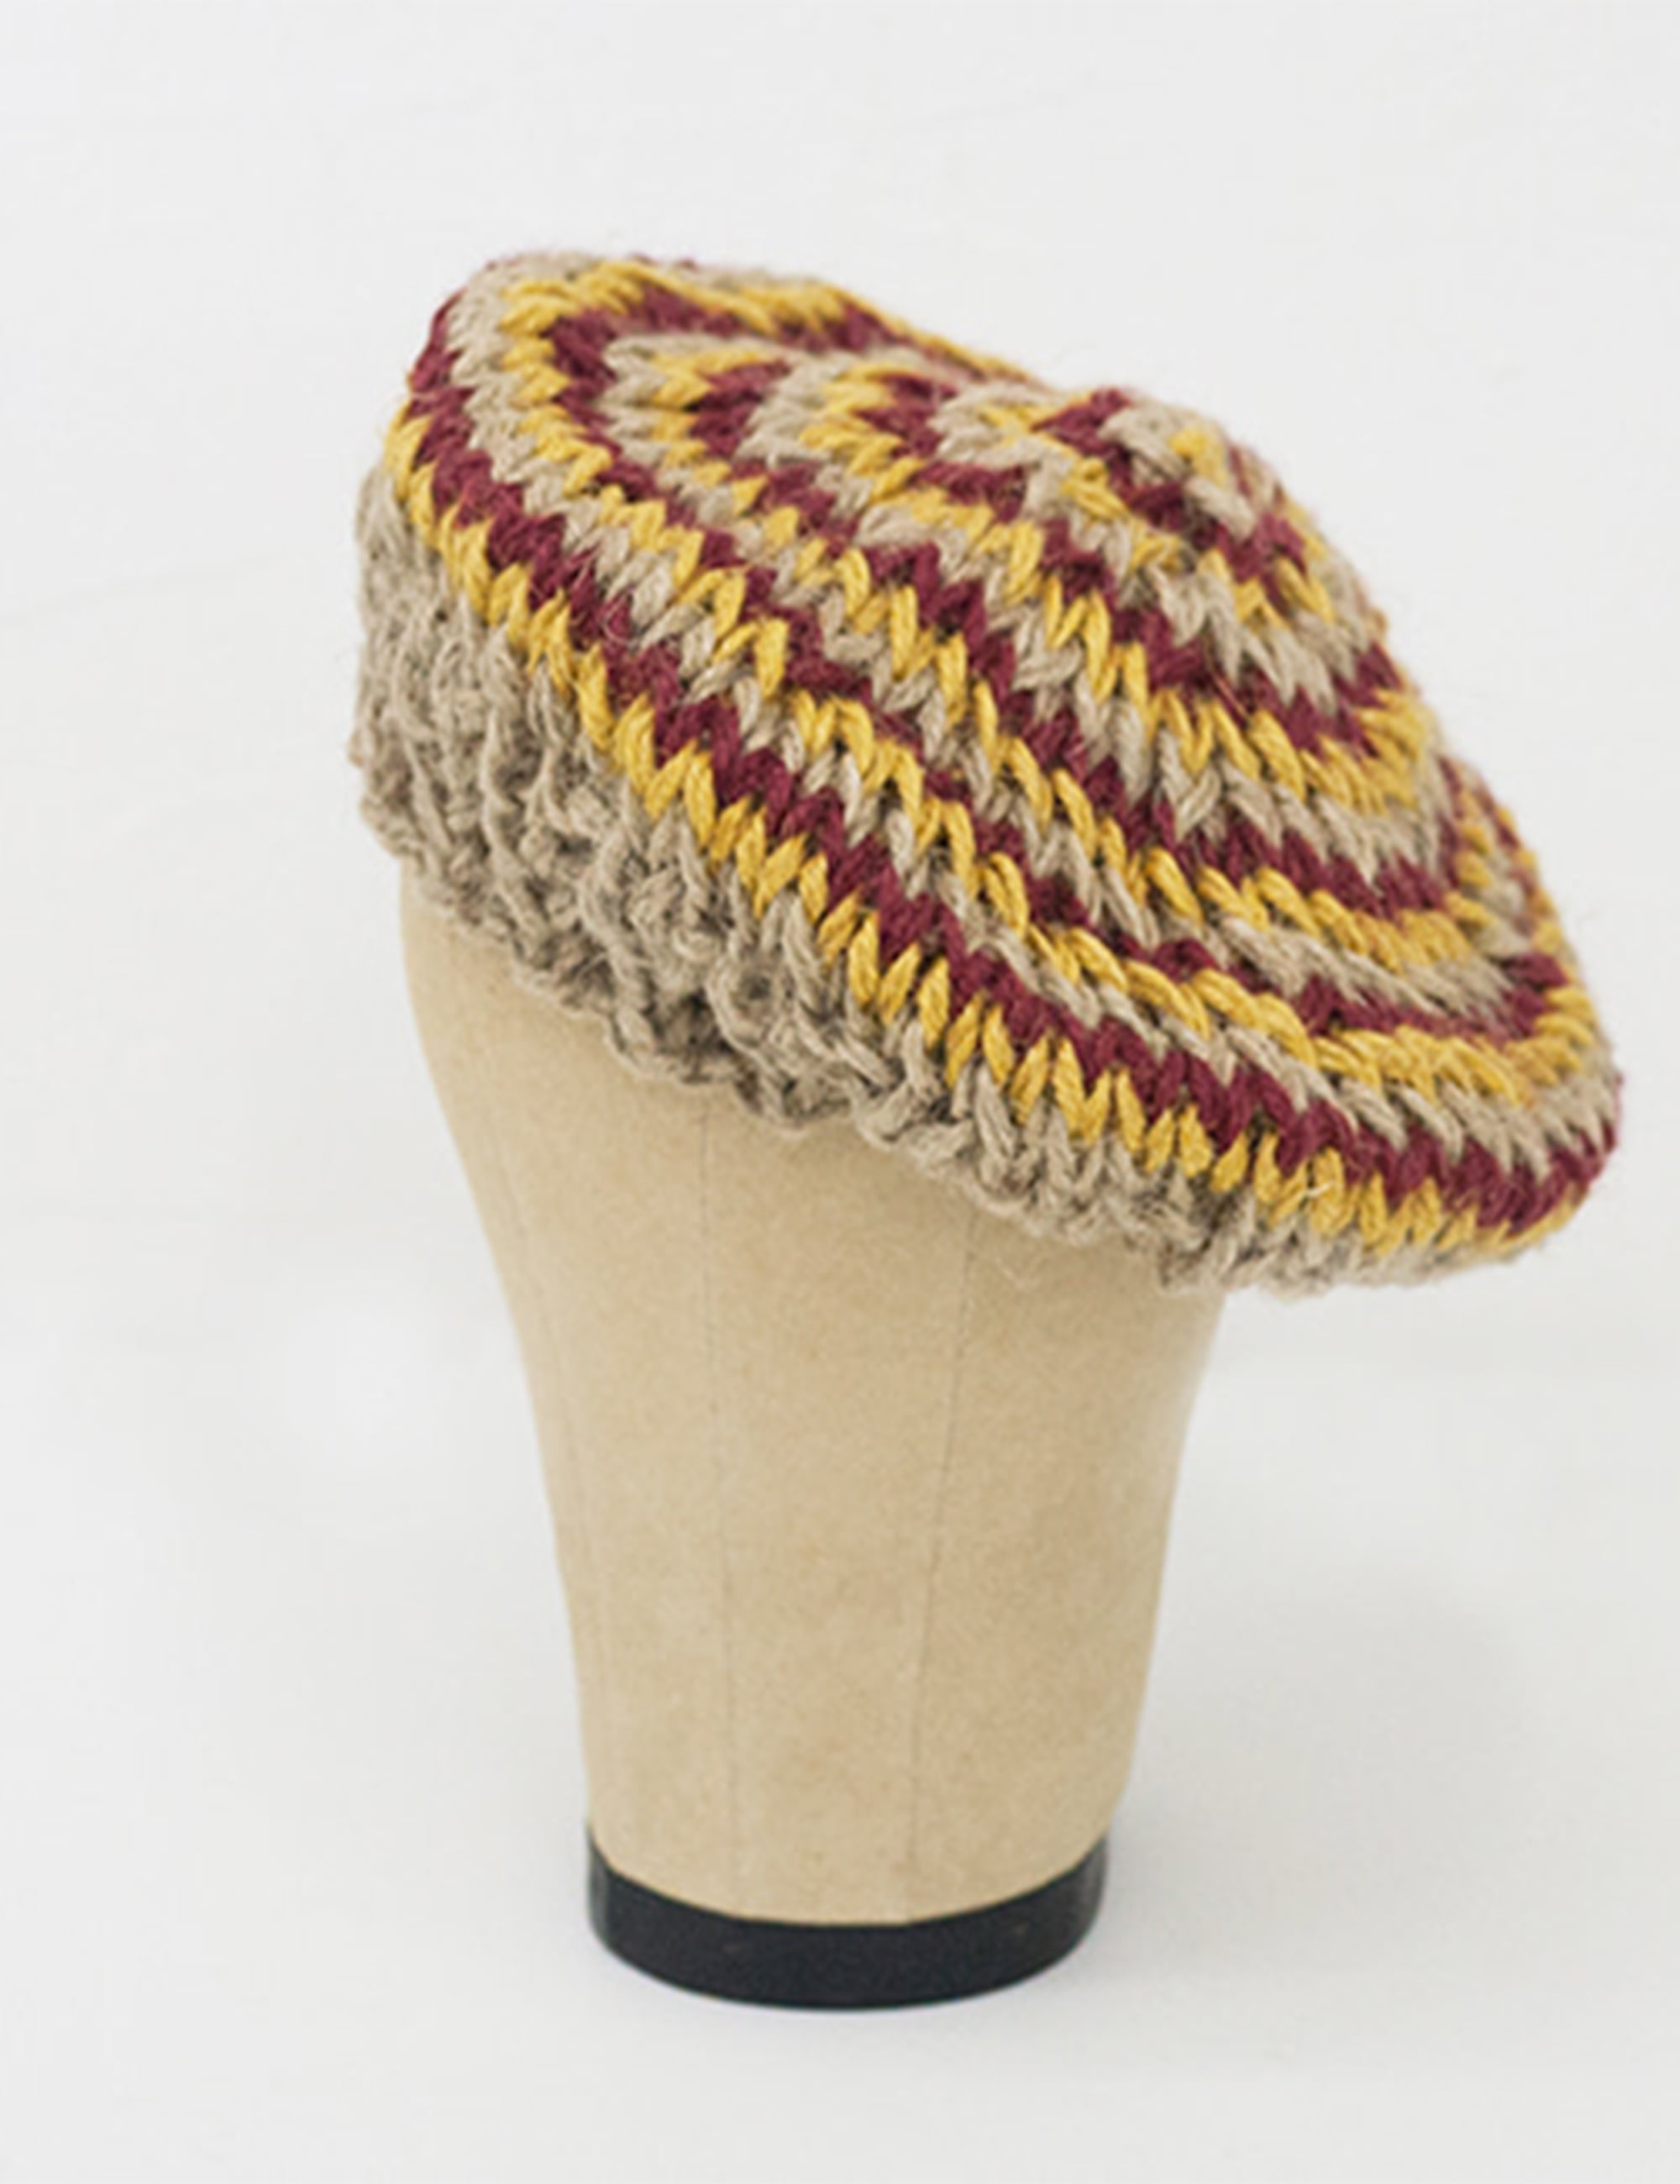 HAND KNITTED JUTE BERET_NATURAL/YELLOW/RED